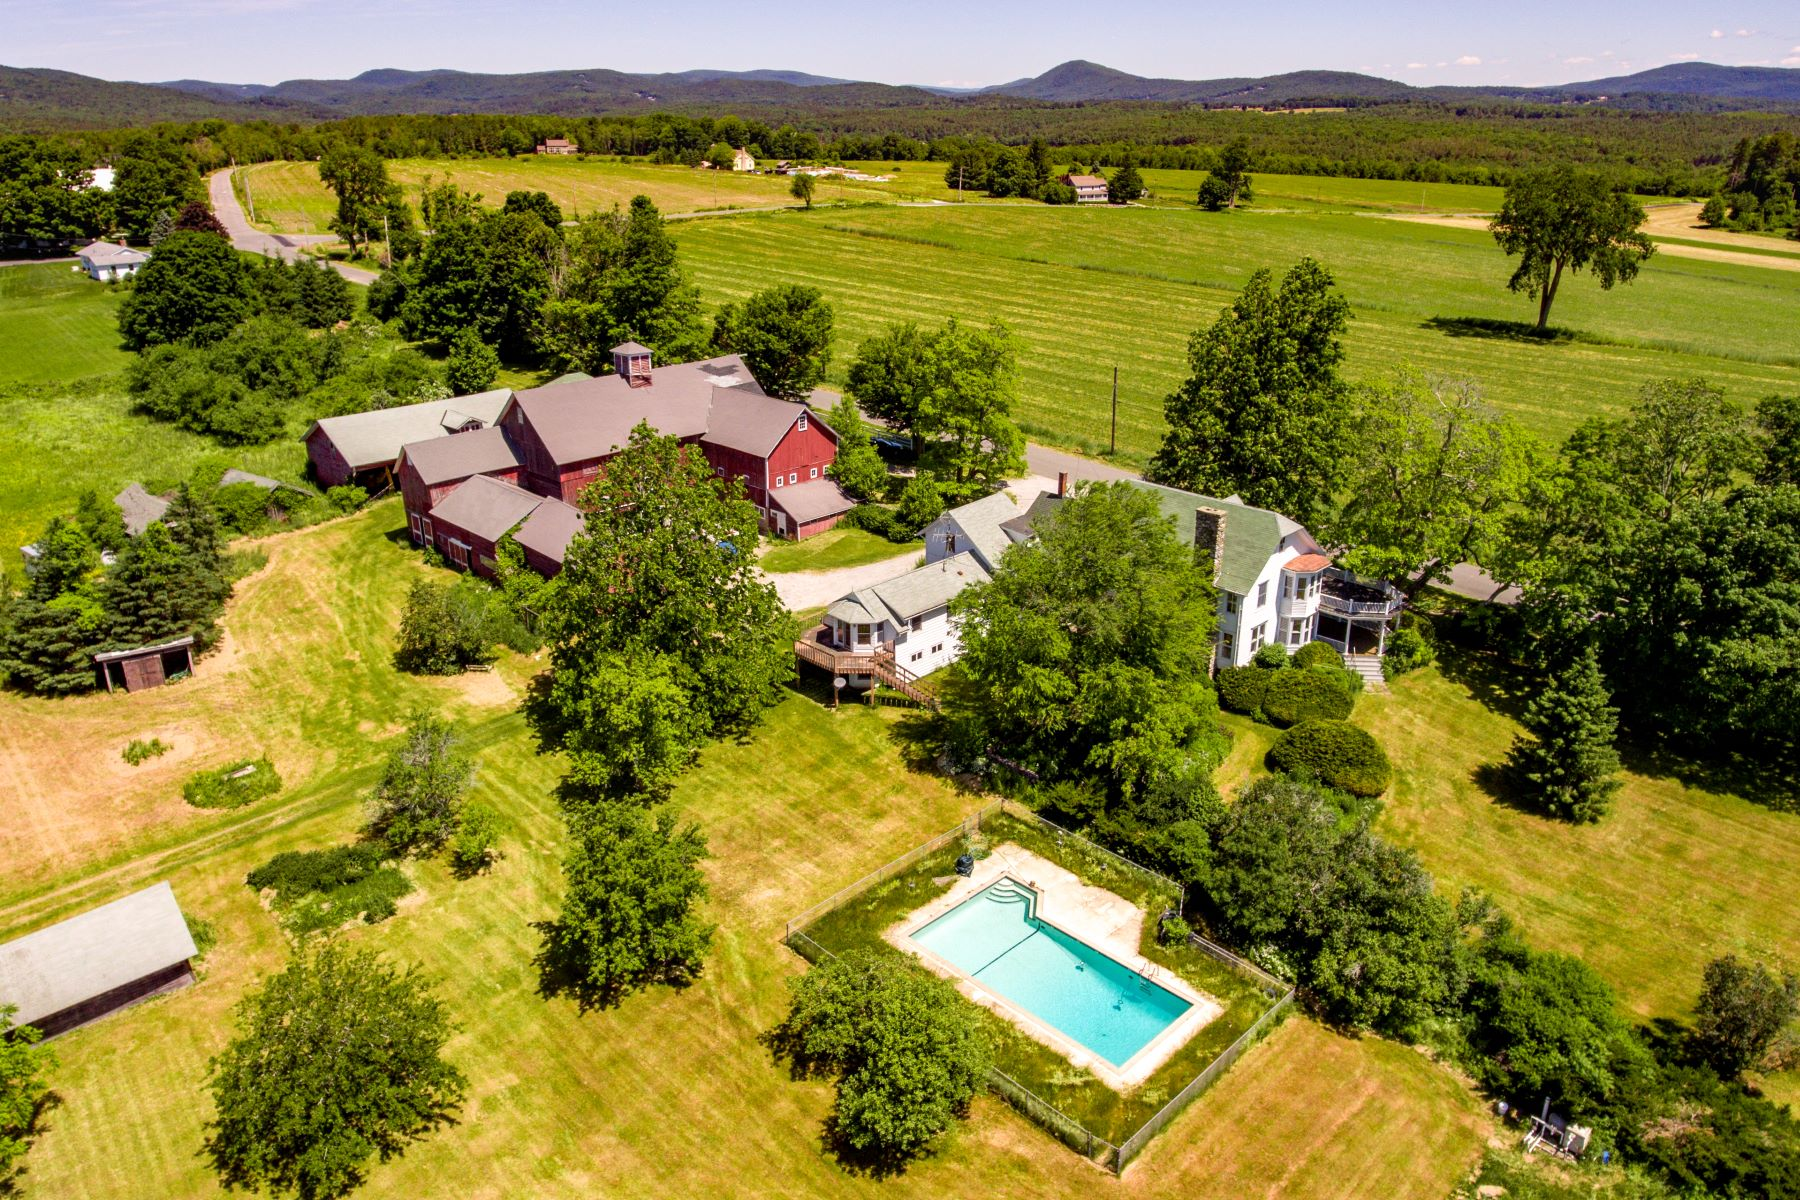 Single Family Home for Sale at Baldwin Hill Farm - an Iconic Berkshire Property 121 Baldwin Hill Rd Egremont, Massachusetts, 01258 United States